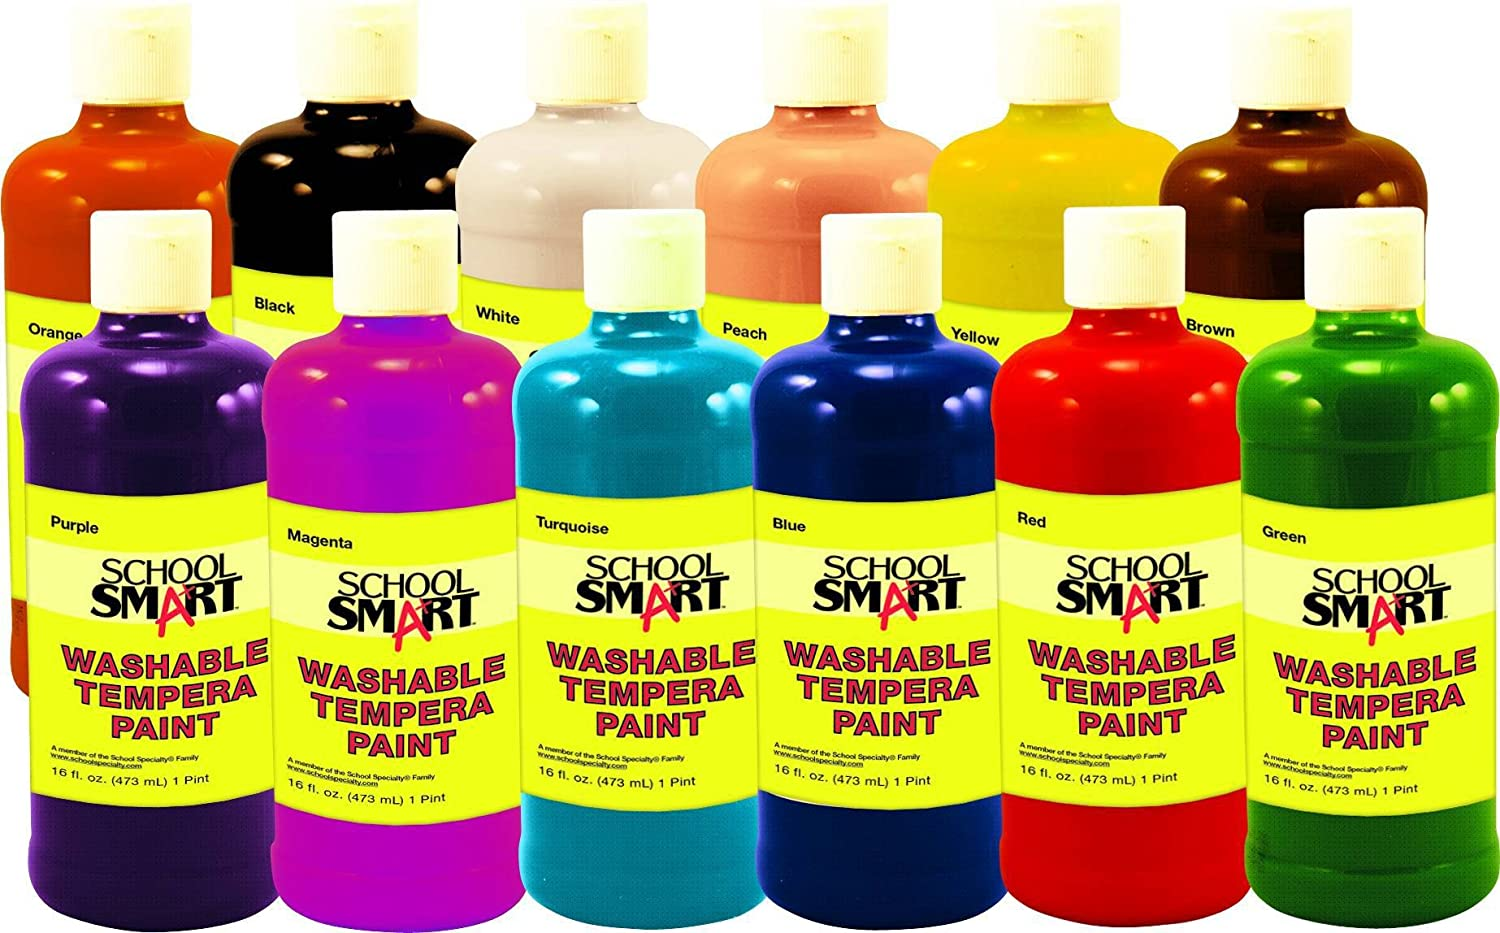 School Smart 1439213 Non-Toxic Washable Tempera Paint Set, 1-Pint Plastic Bottle, Assorted Color